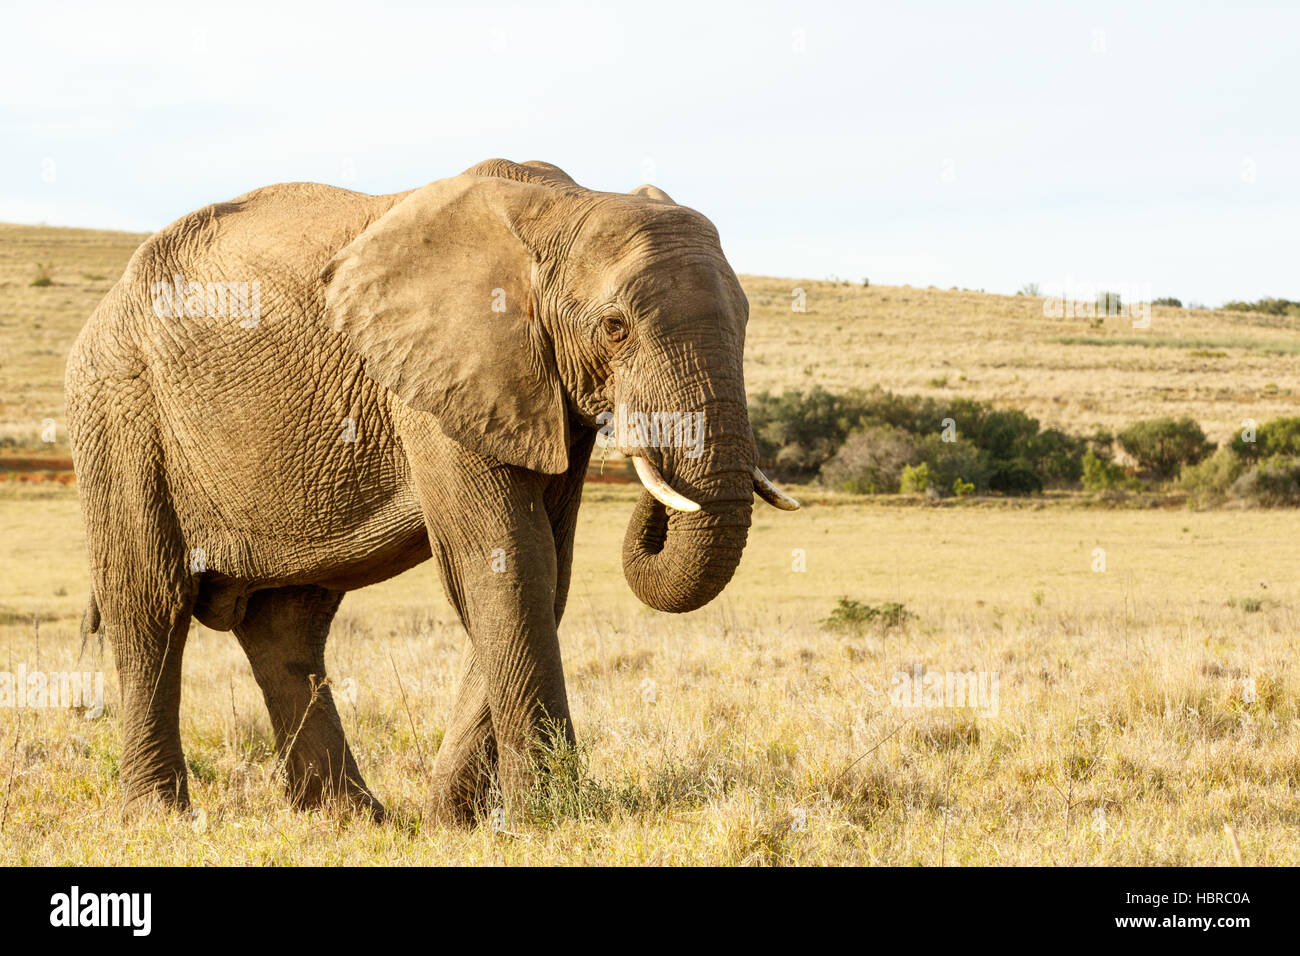 African Elephant Eating grass in a field - Stock Image